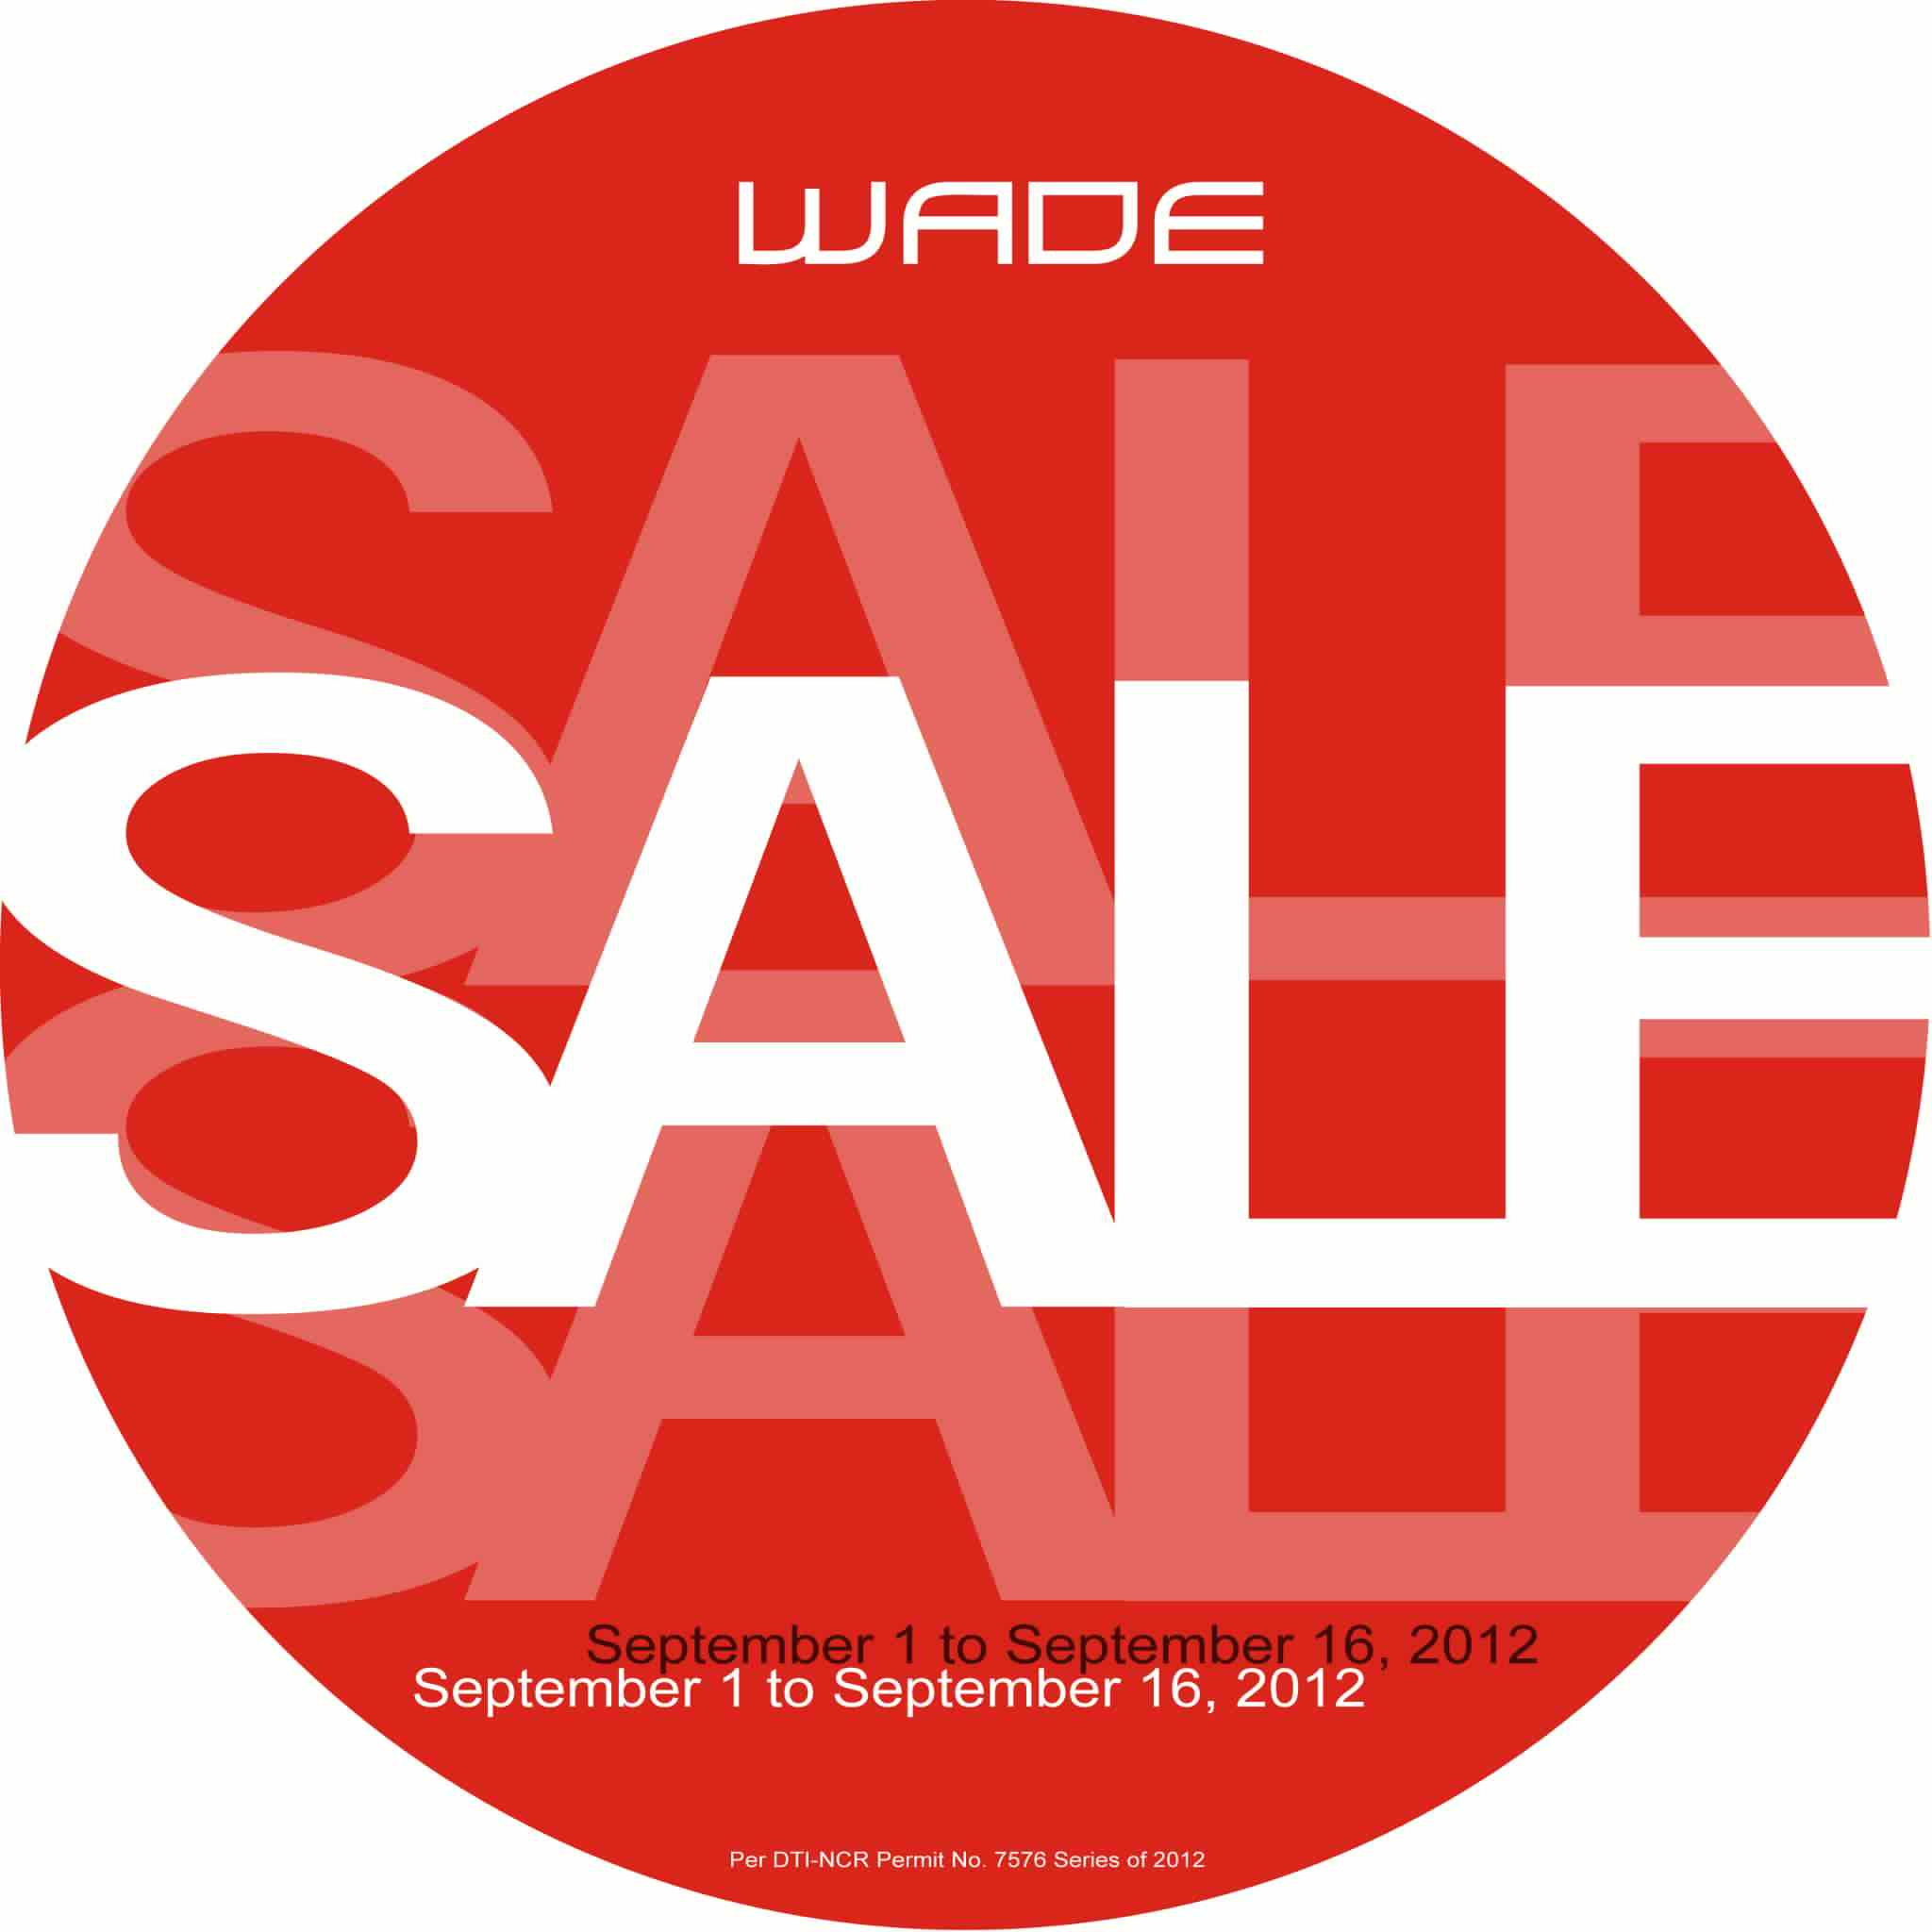 Wade Shoes Sale September 2012